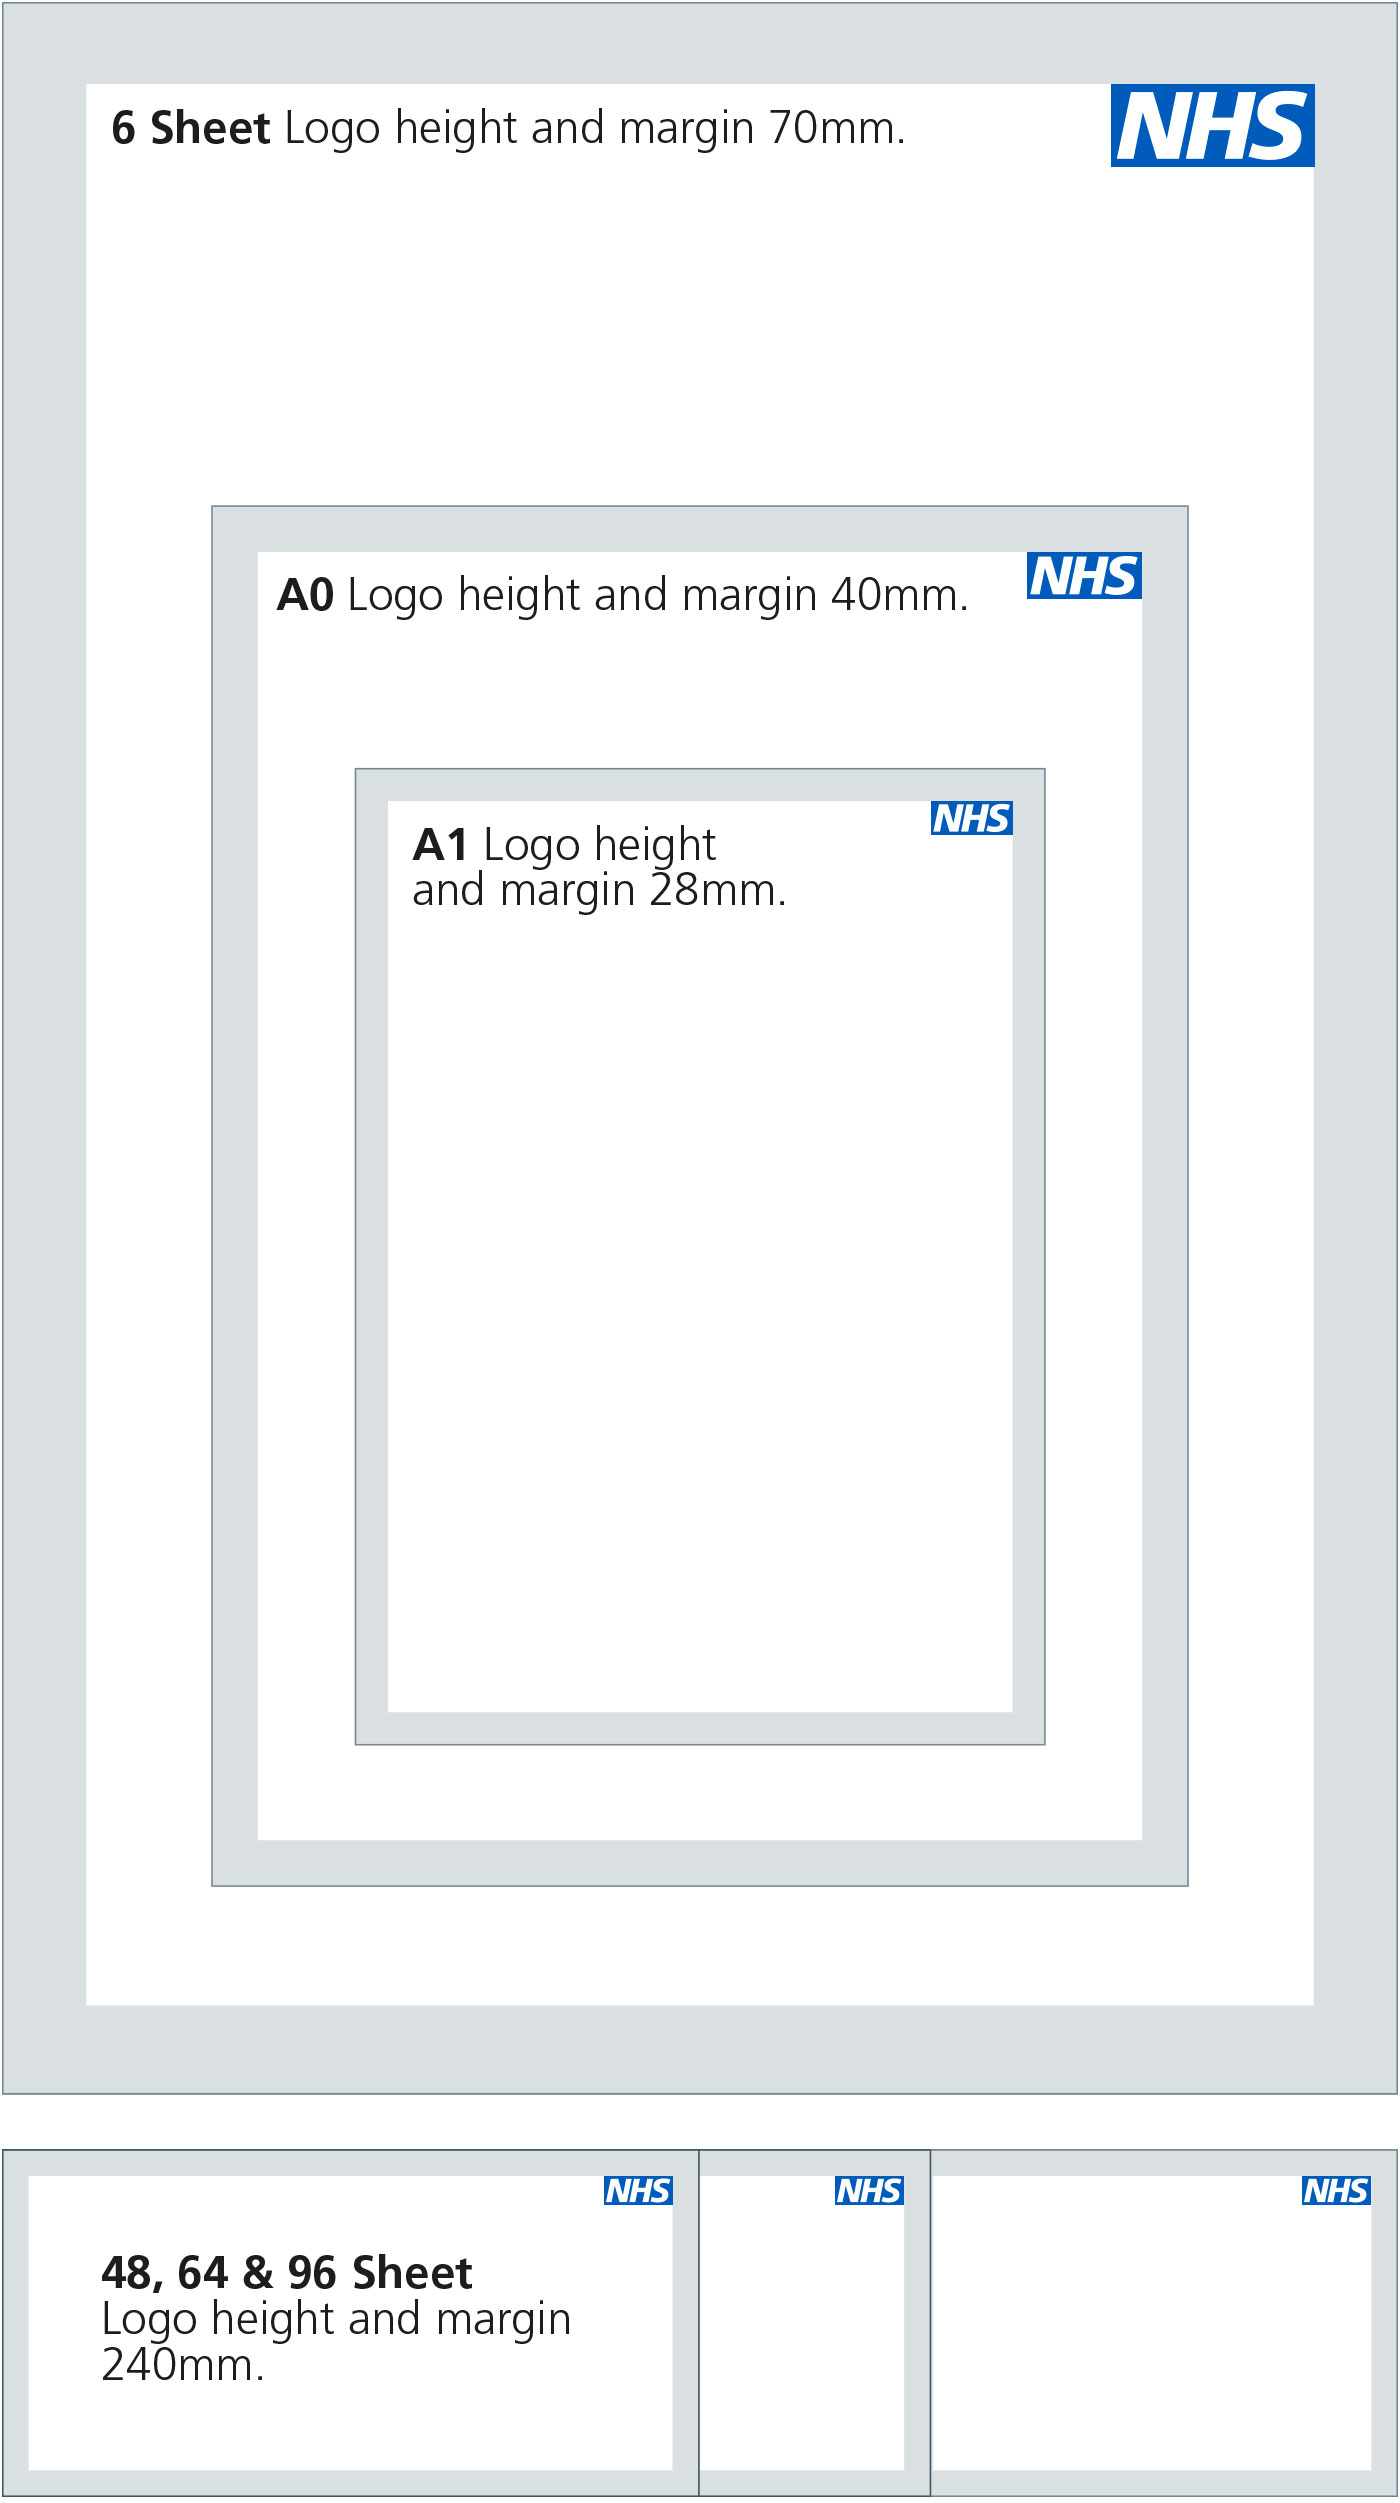 Nhs identity guidelines nhs logo typical advertising poster sizes magicingreecefo Image collections